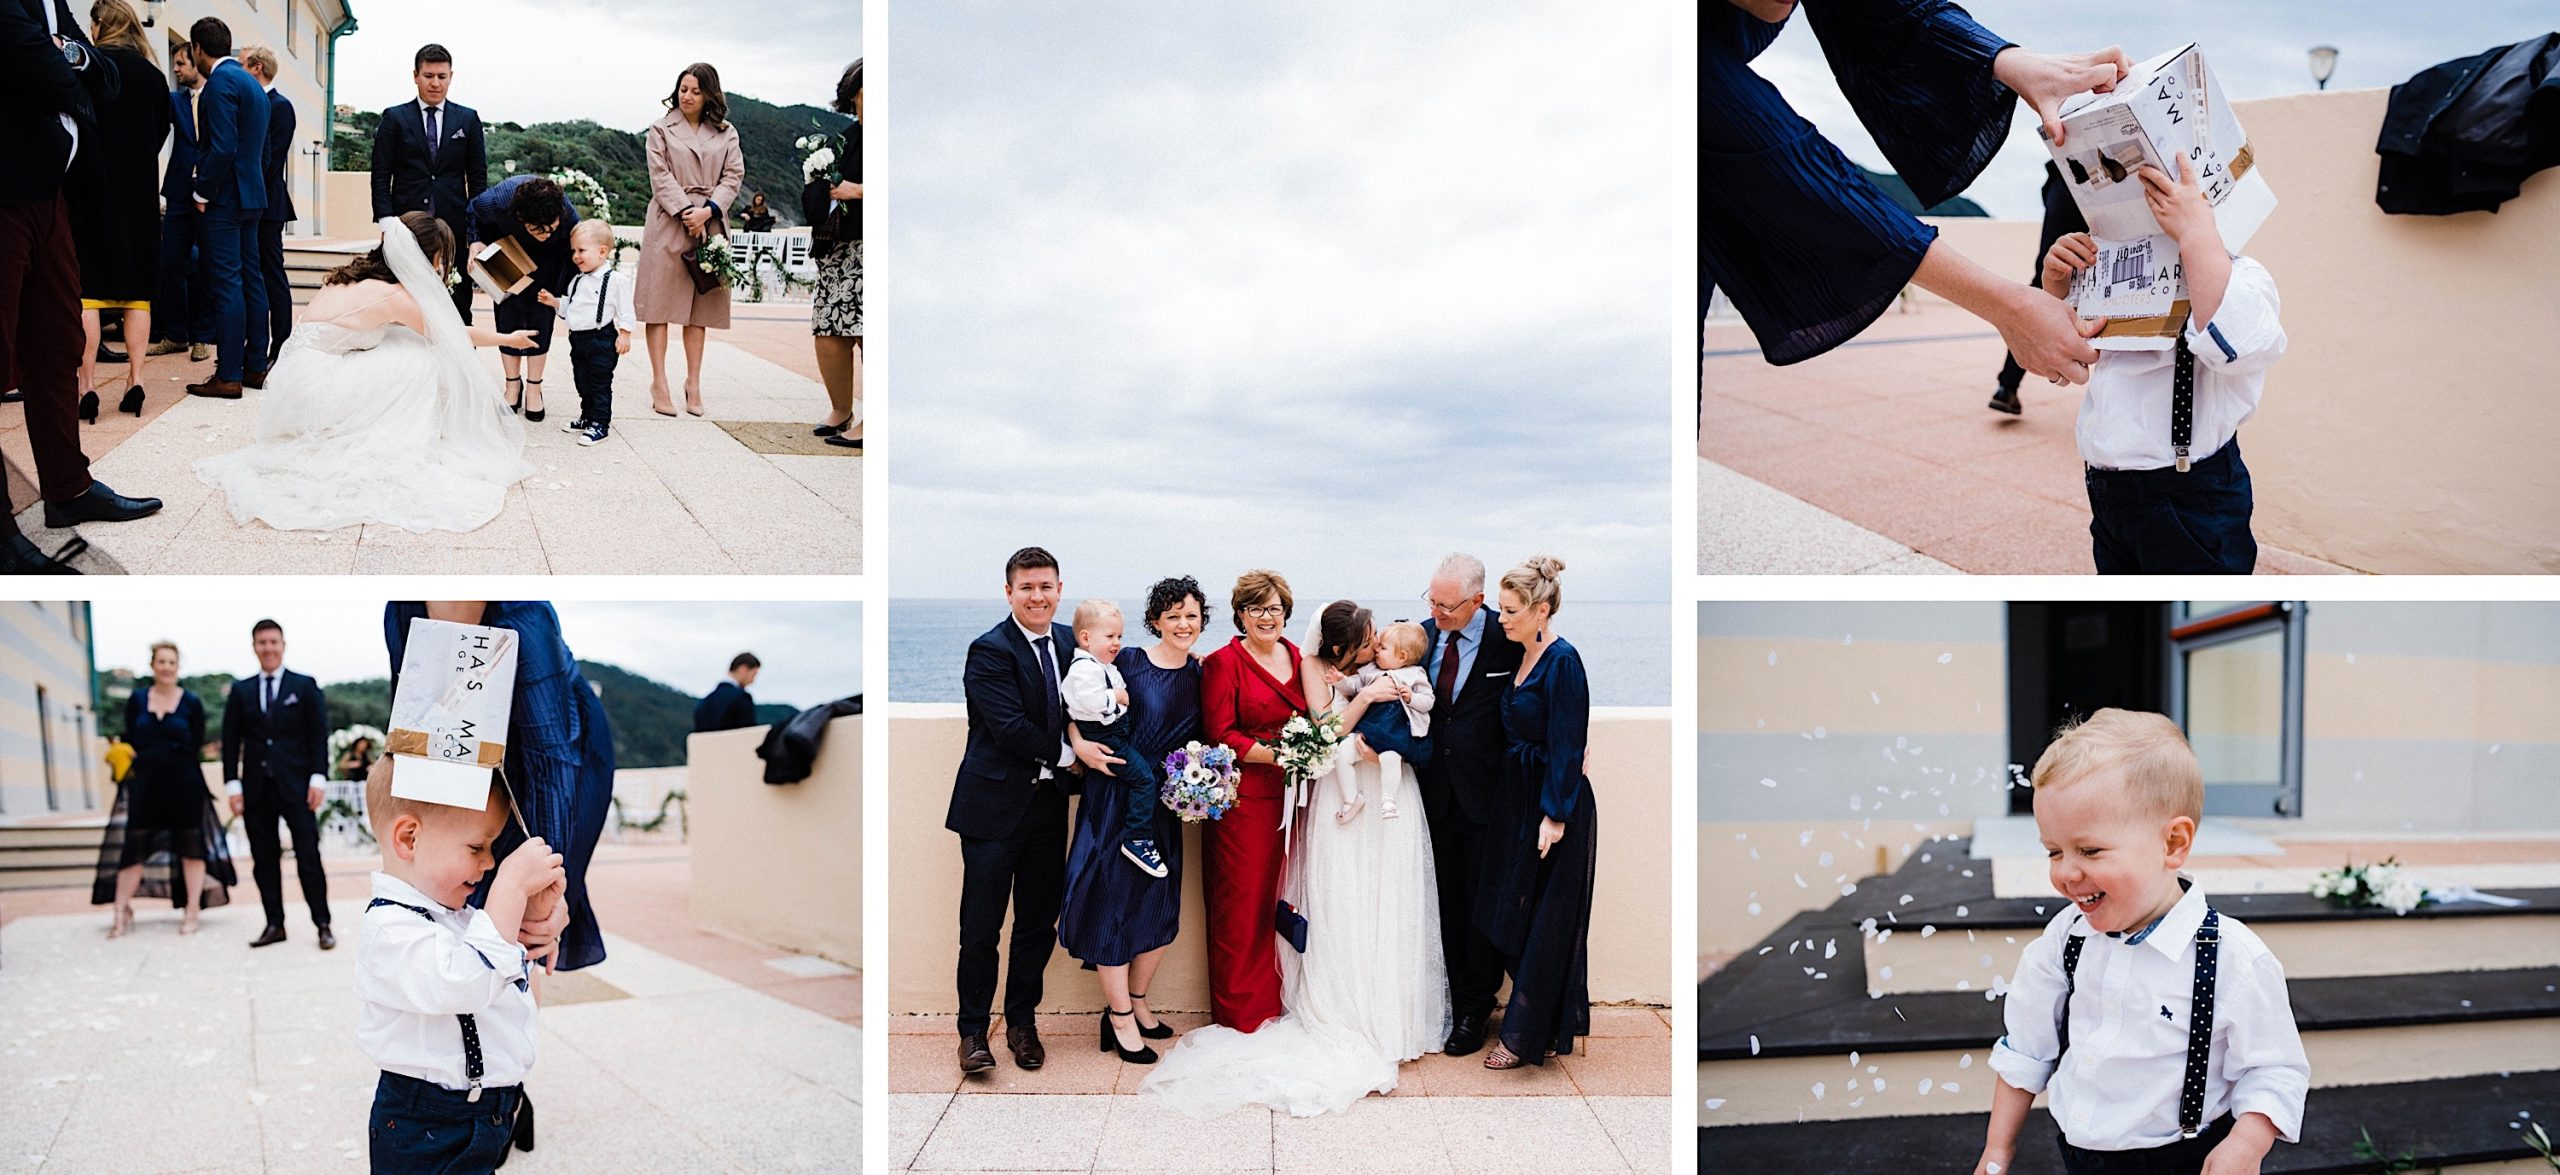 Candid and classic Italian wedding photography of the bride's Australian family at her Destination Wedding in Sestri Levante, Italy.